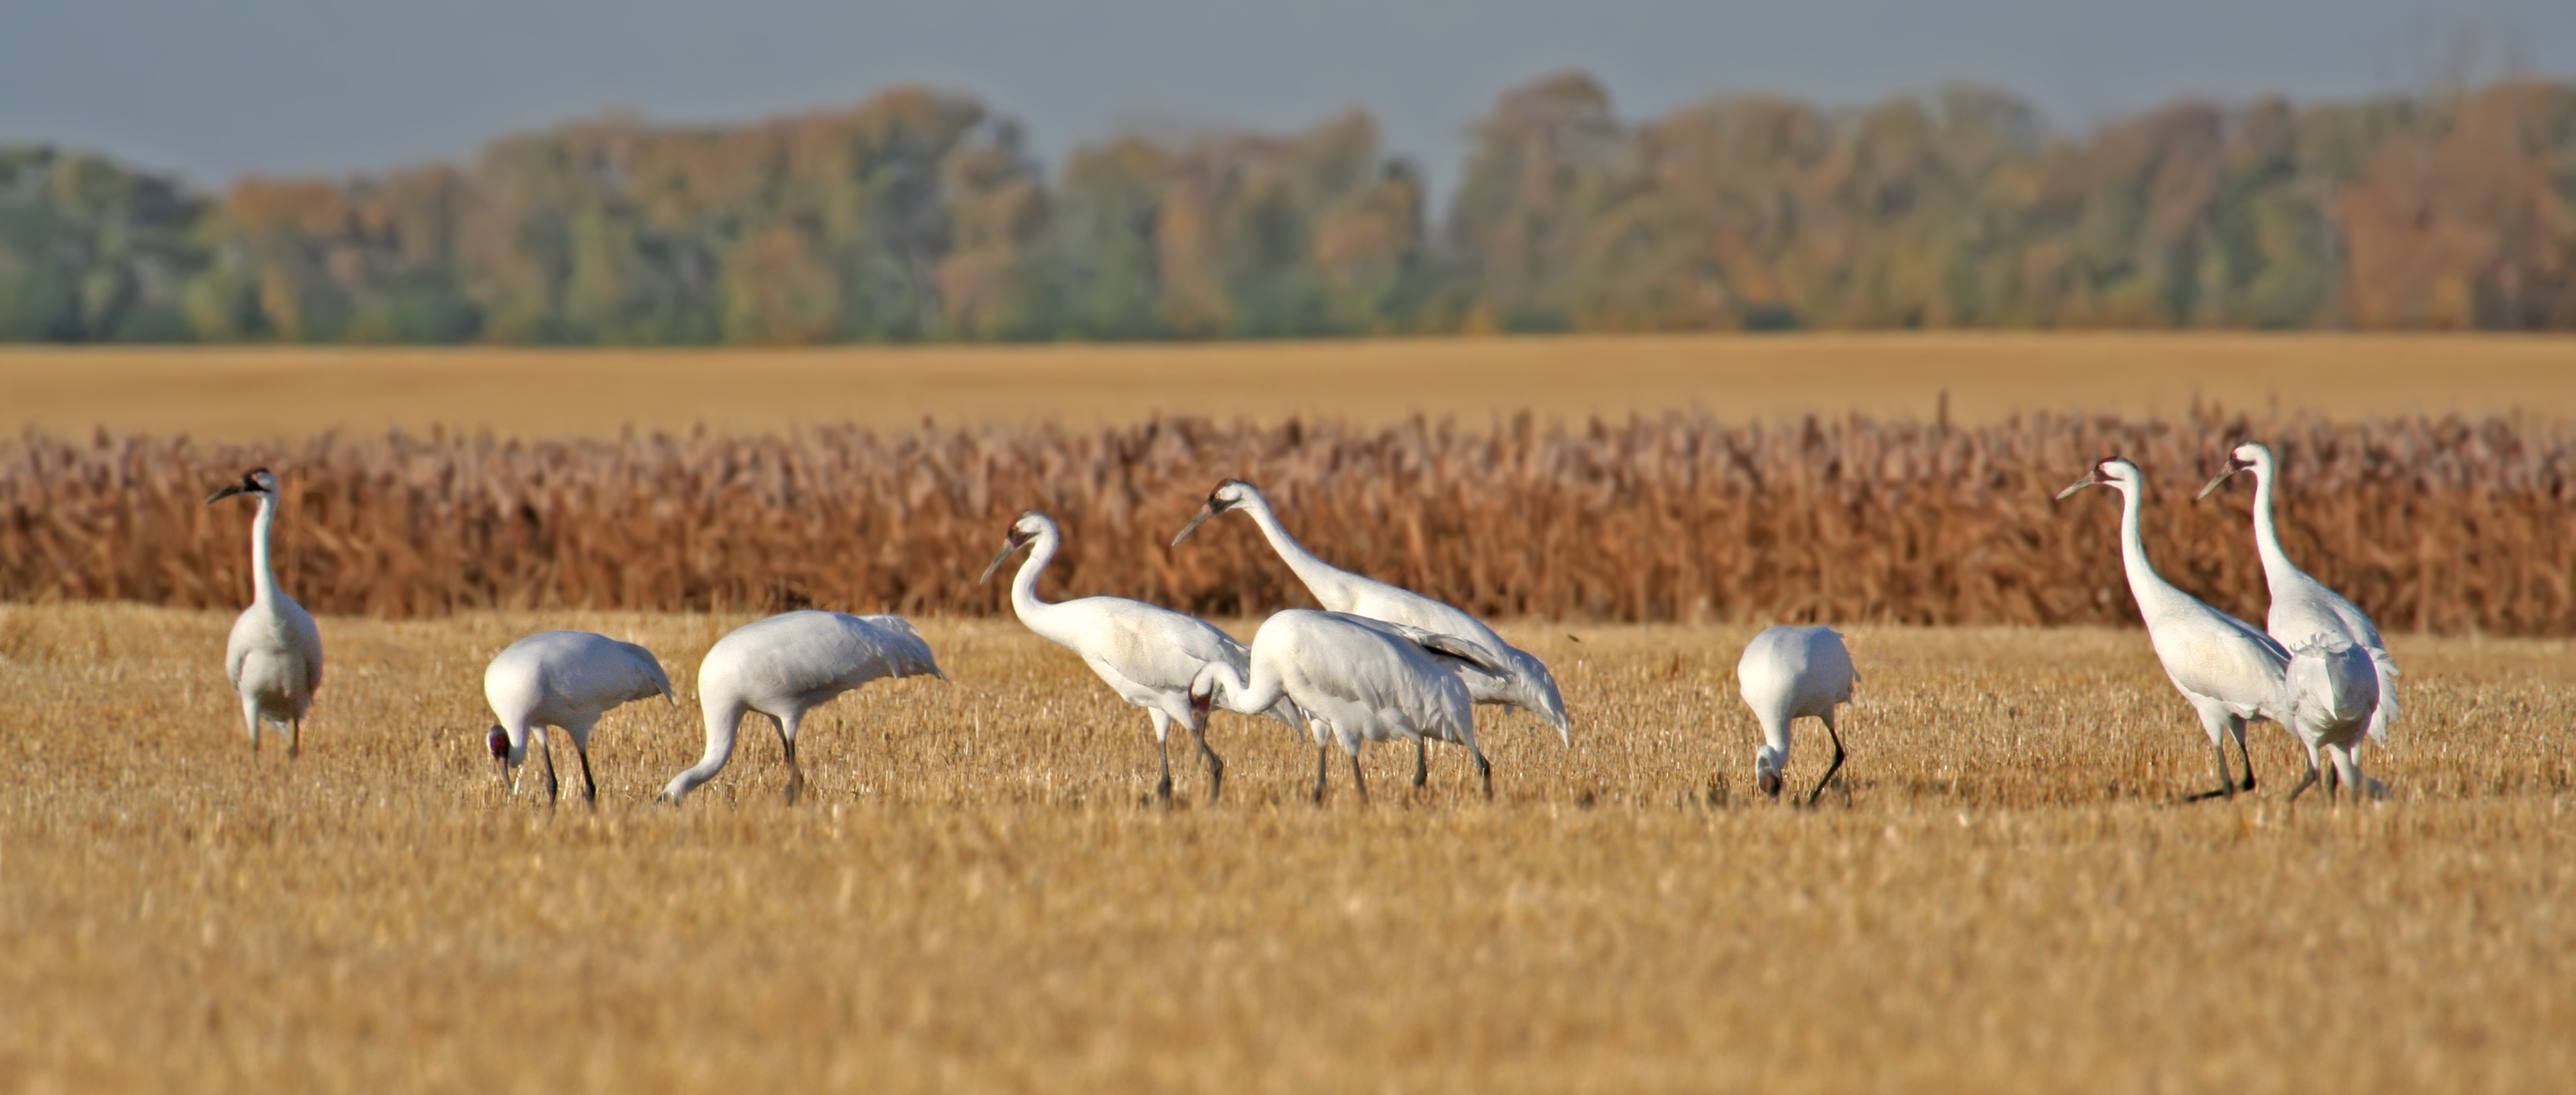 Whooping Cranes in grain field